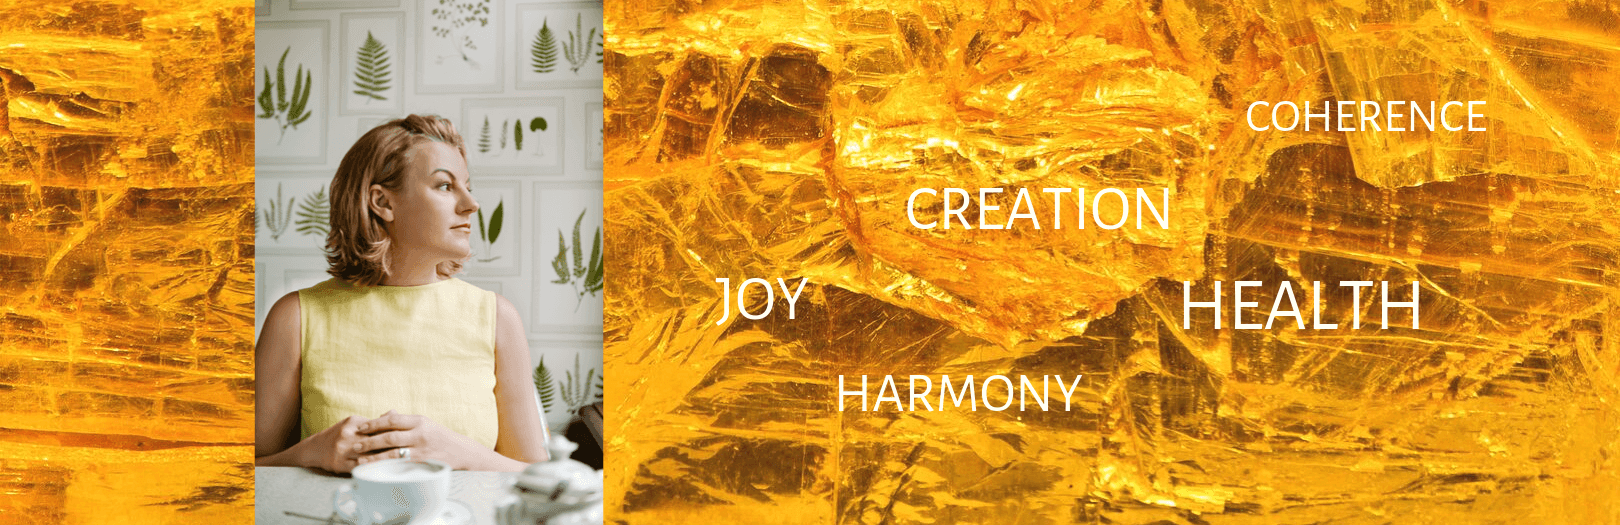 amber light healing header